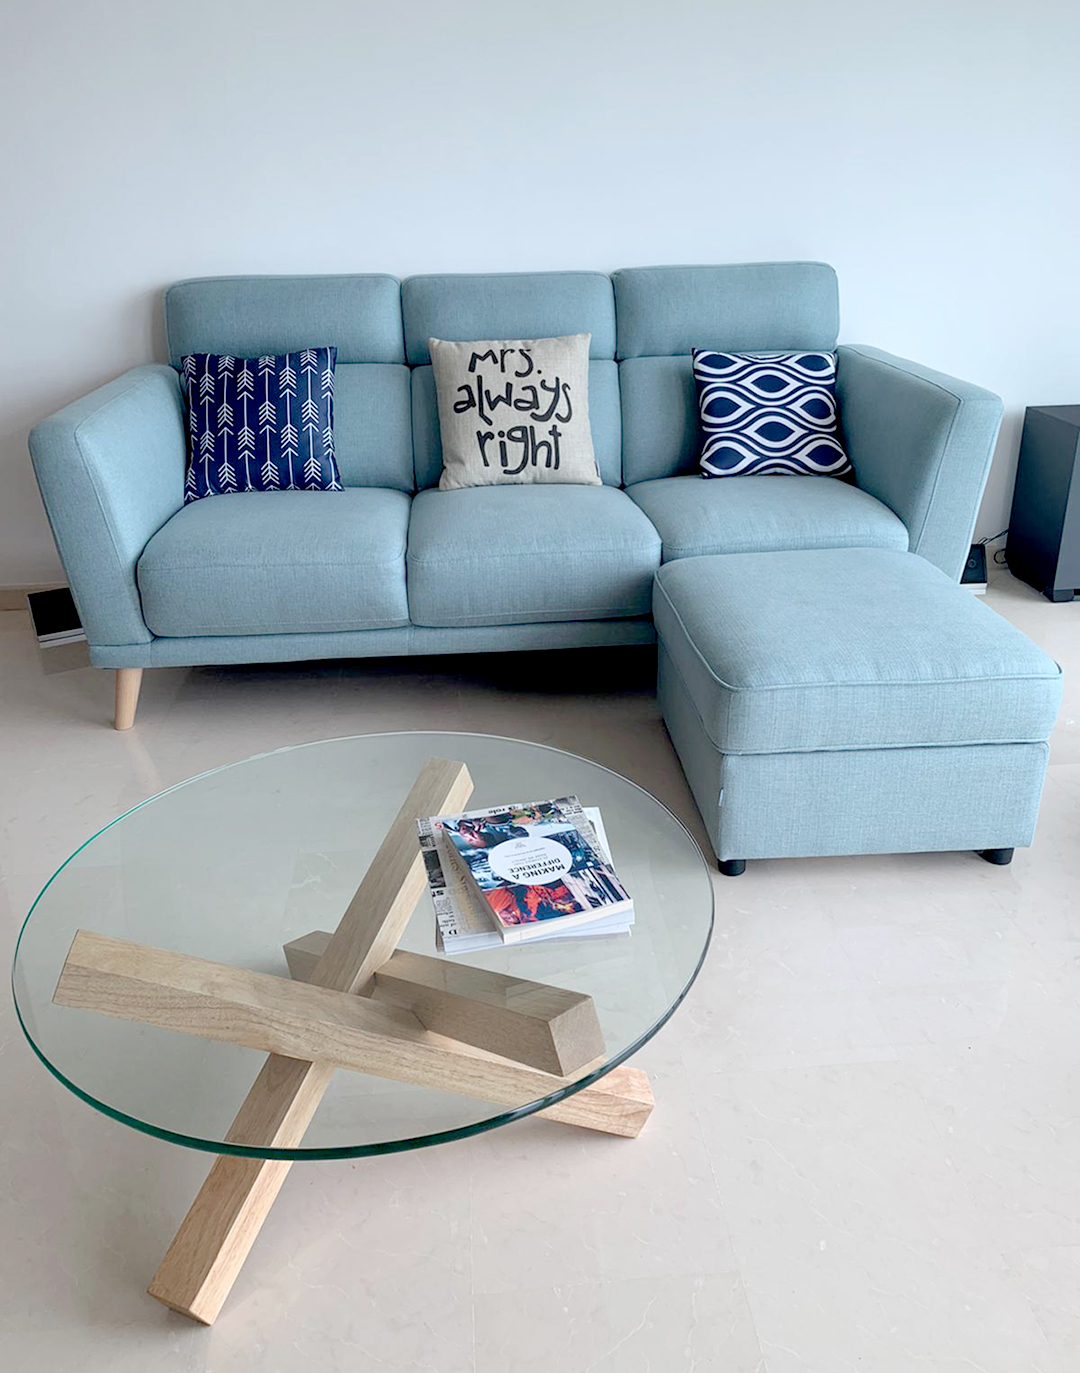 Costa Del Sol - Bayshore Road | Product Seen: [Neuron 3 Seater Sofa, Quiche Coffee Table & Cushion – Mrs. Always Right]